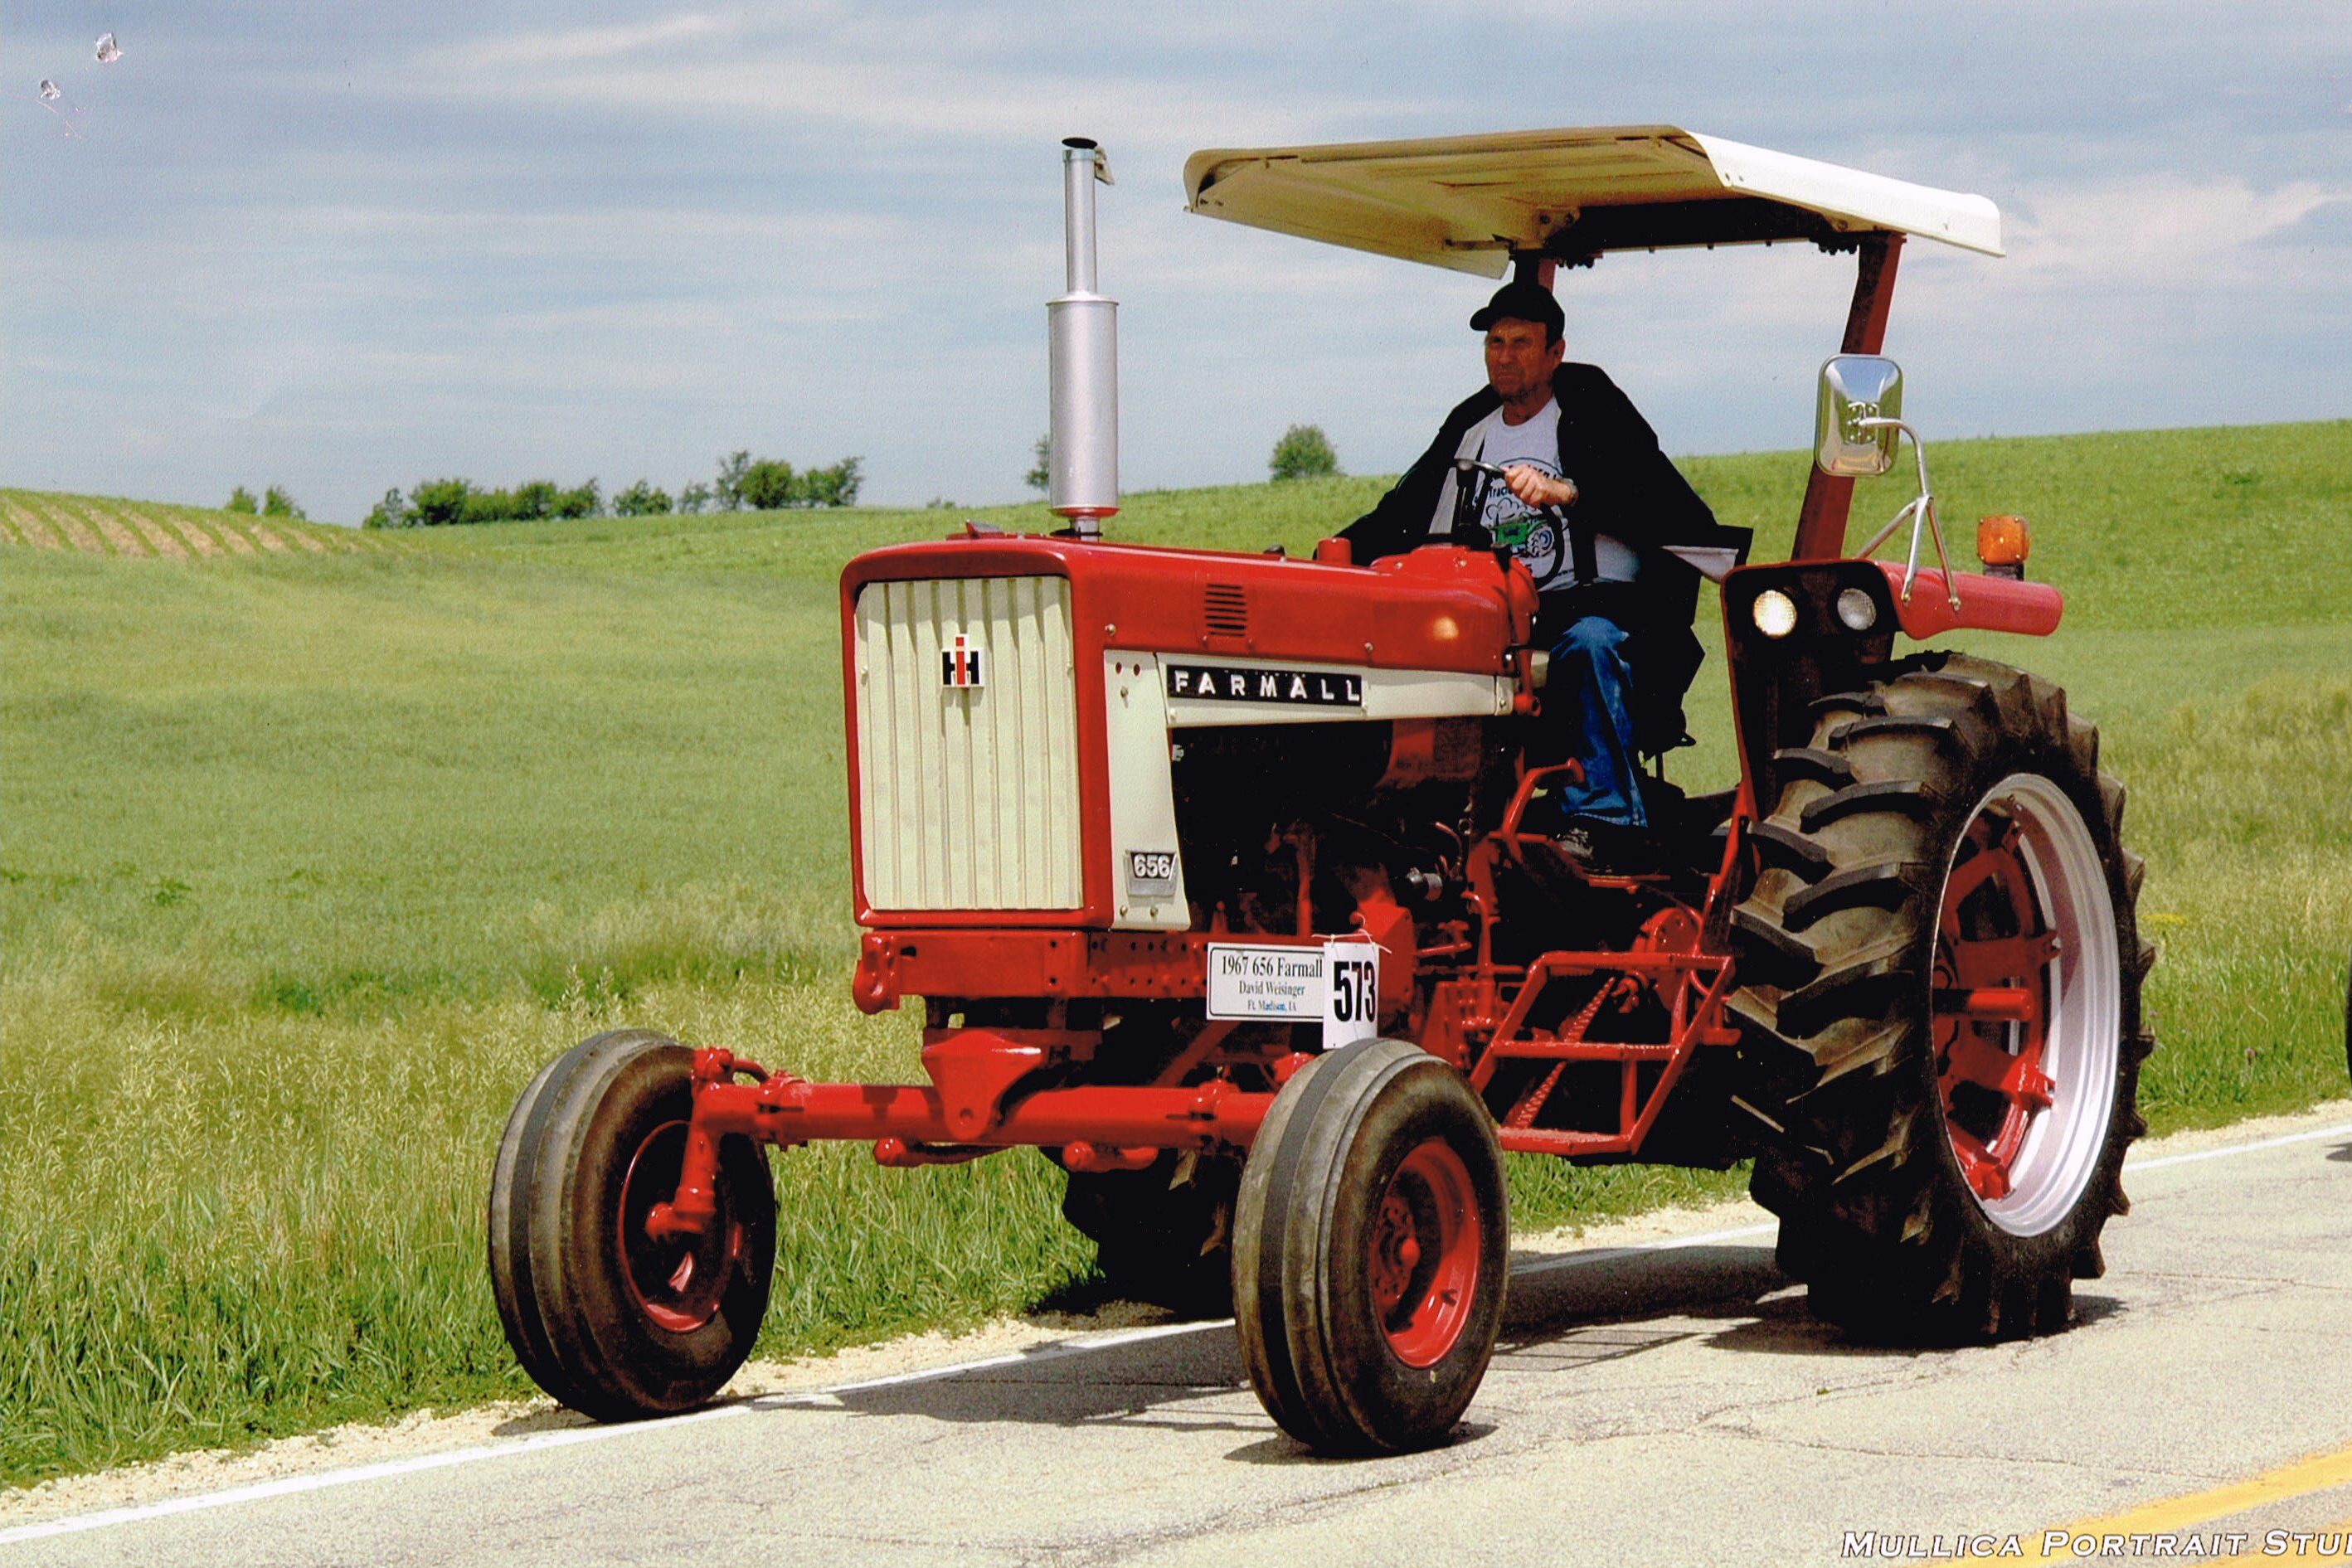 2015 Featured Tractor-Dave Weisinger